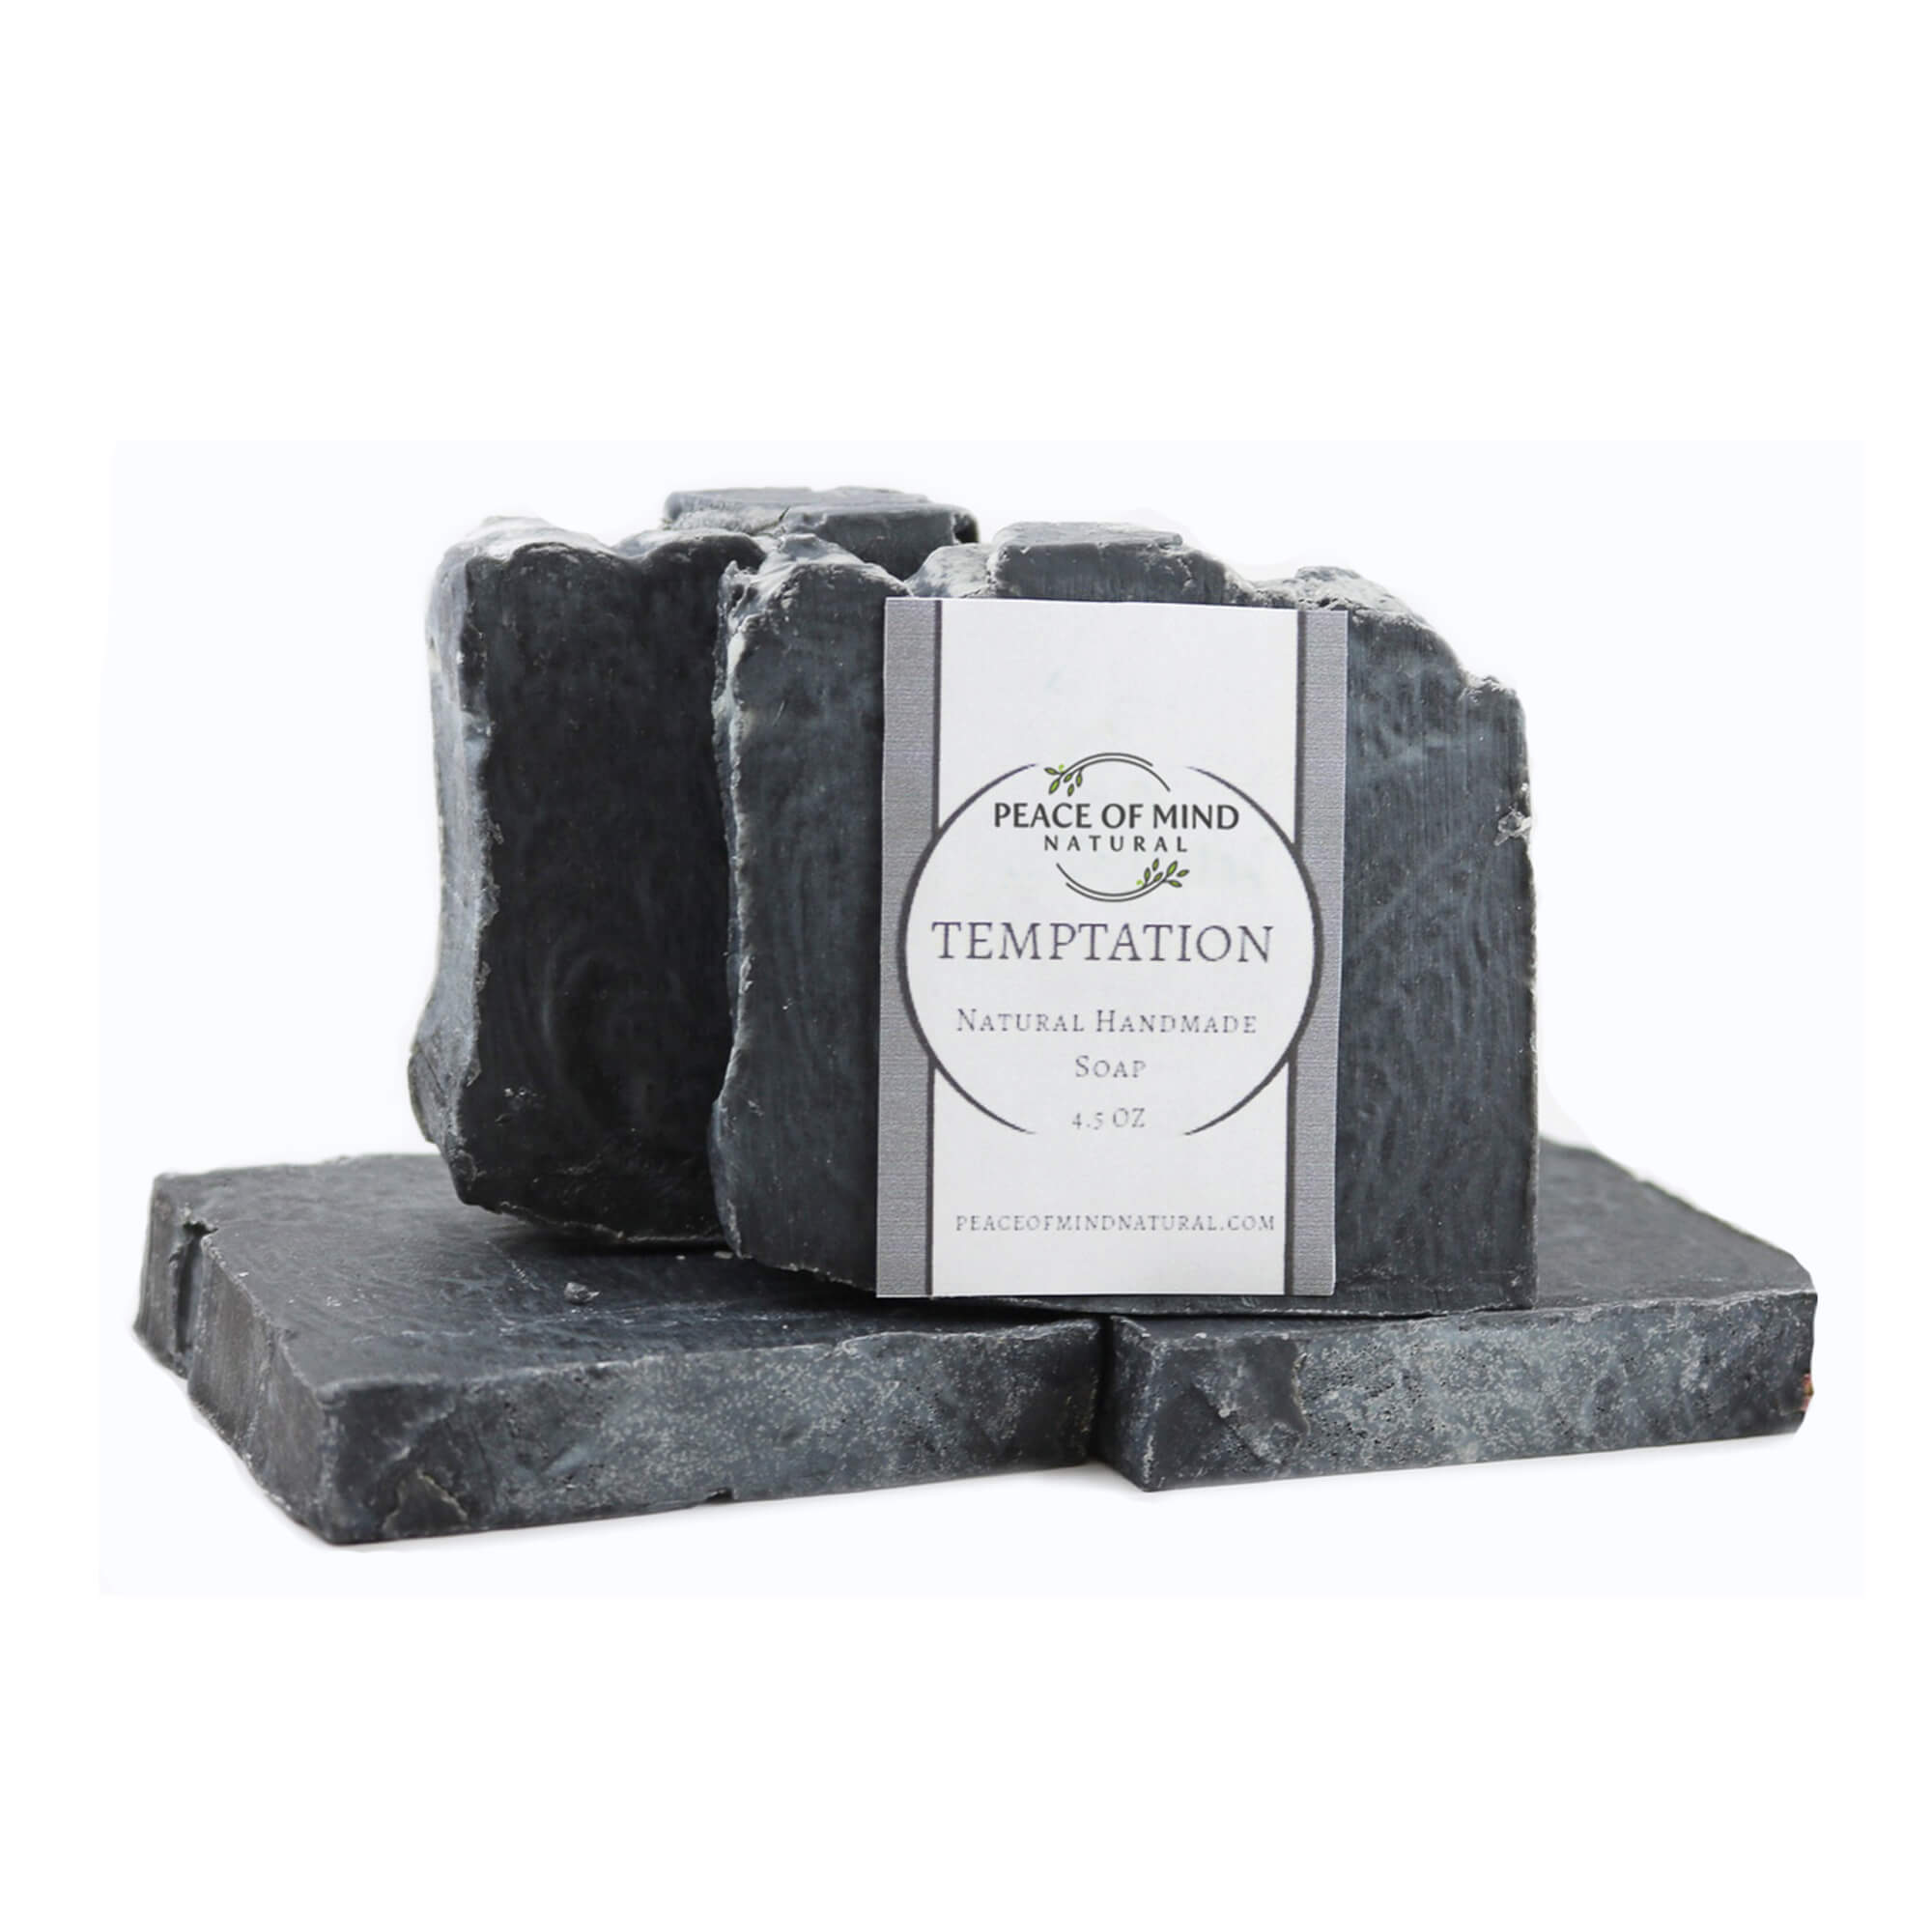 Dark Temptation Beer Soap